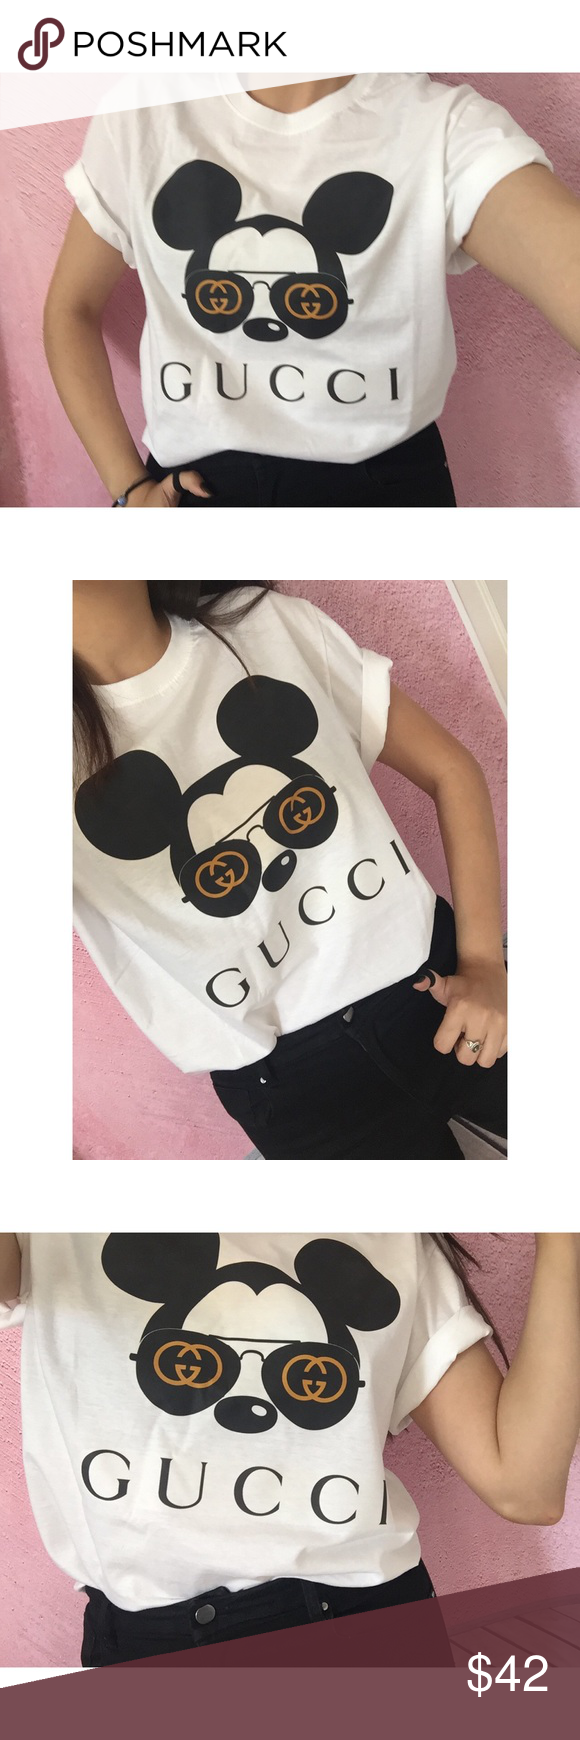 ad13b9943 Gucci x Disney Mickey Mouse T-Shirt *Not authentic Ultra cute, cool ...